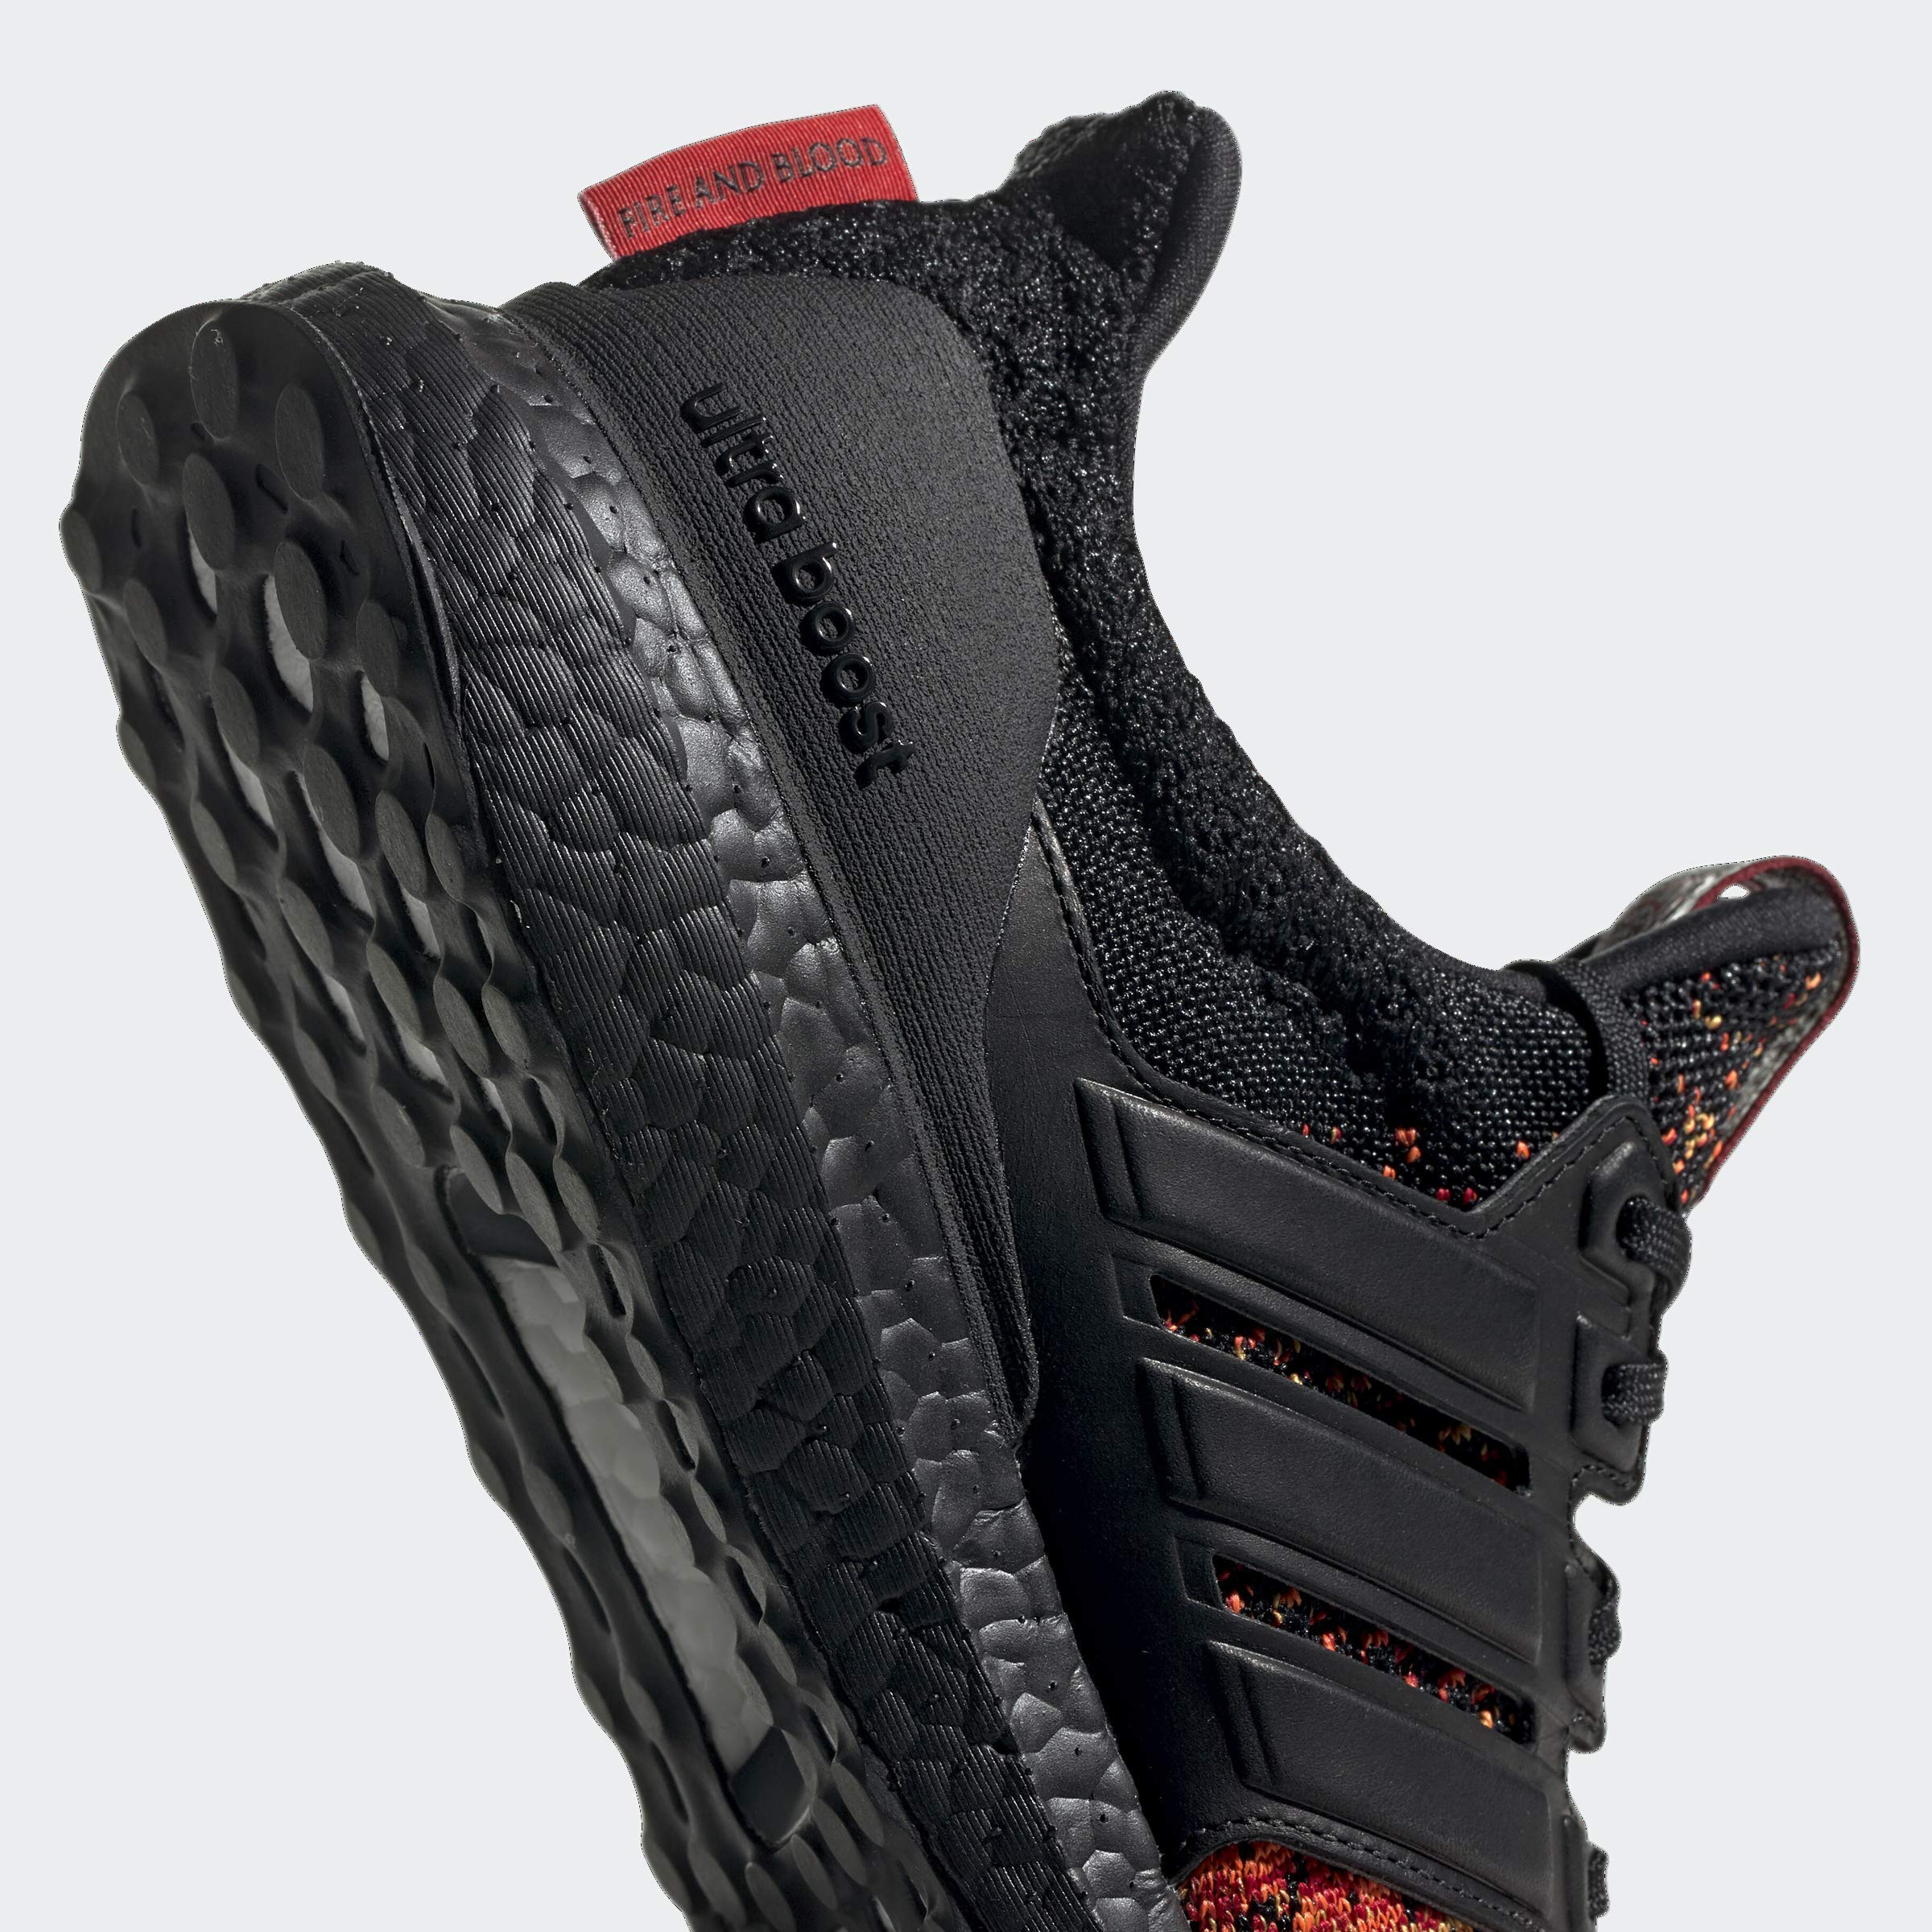 adidas x Game of Thrones Men's Ultraboost Running Shoes, House Targaryen, 8.5 M US by adidas (Image #2)